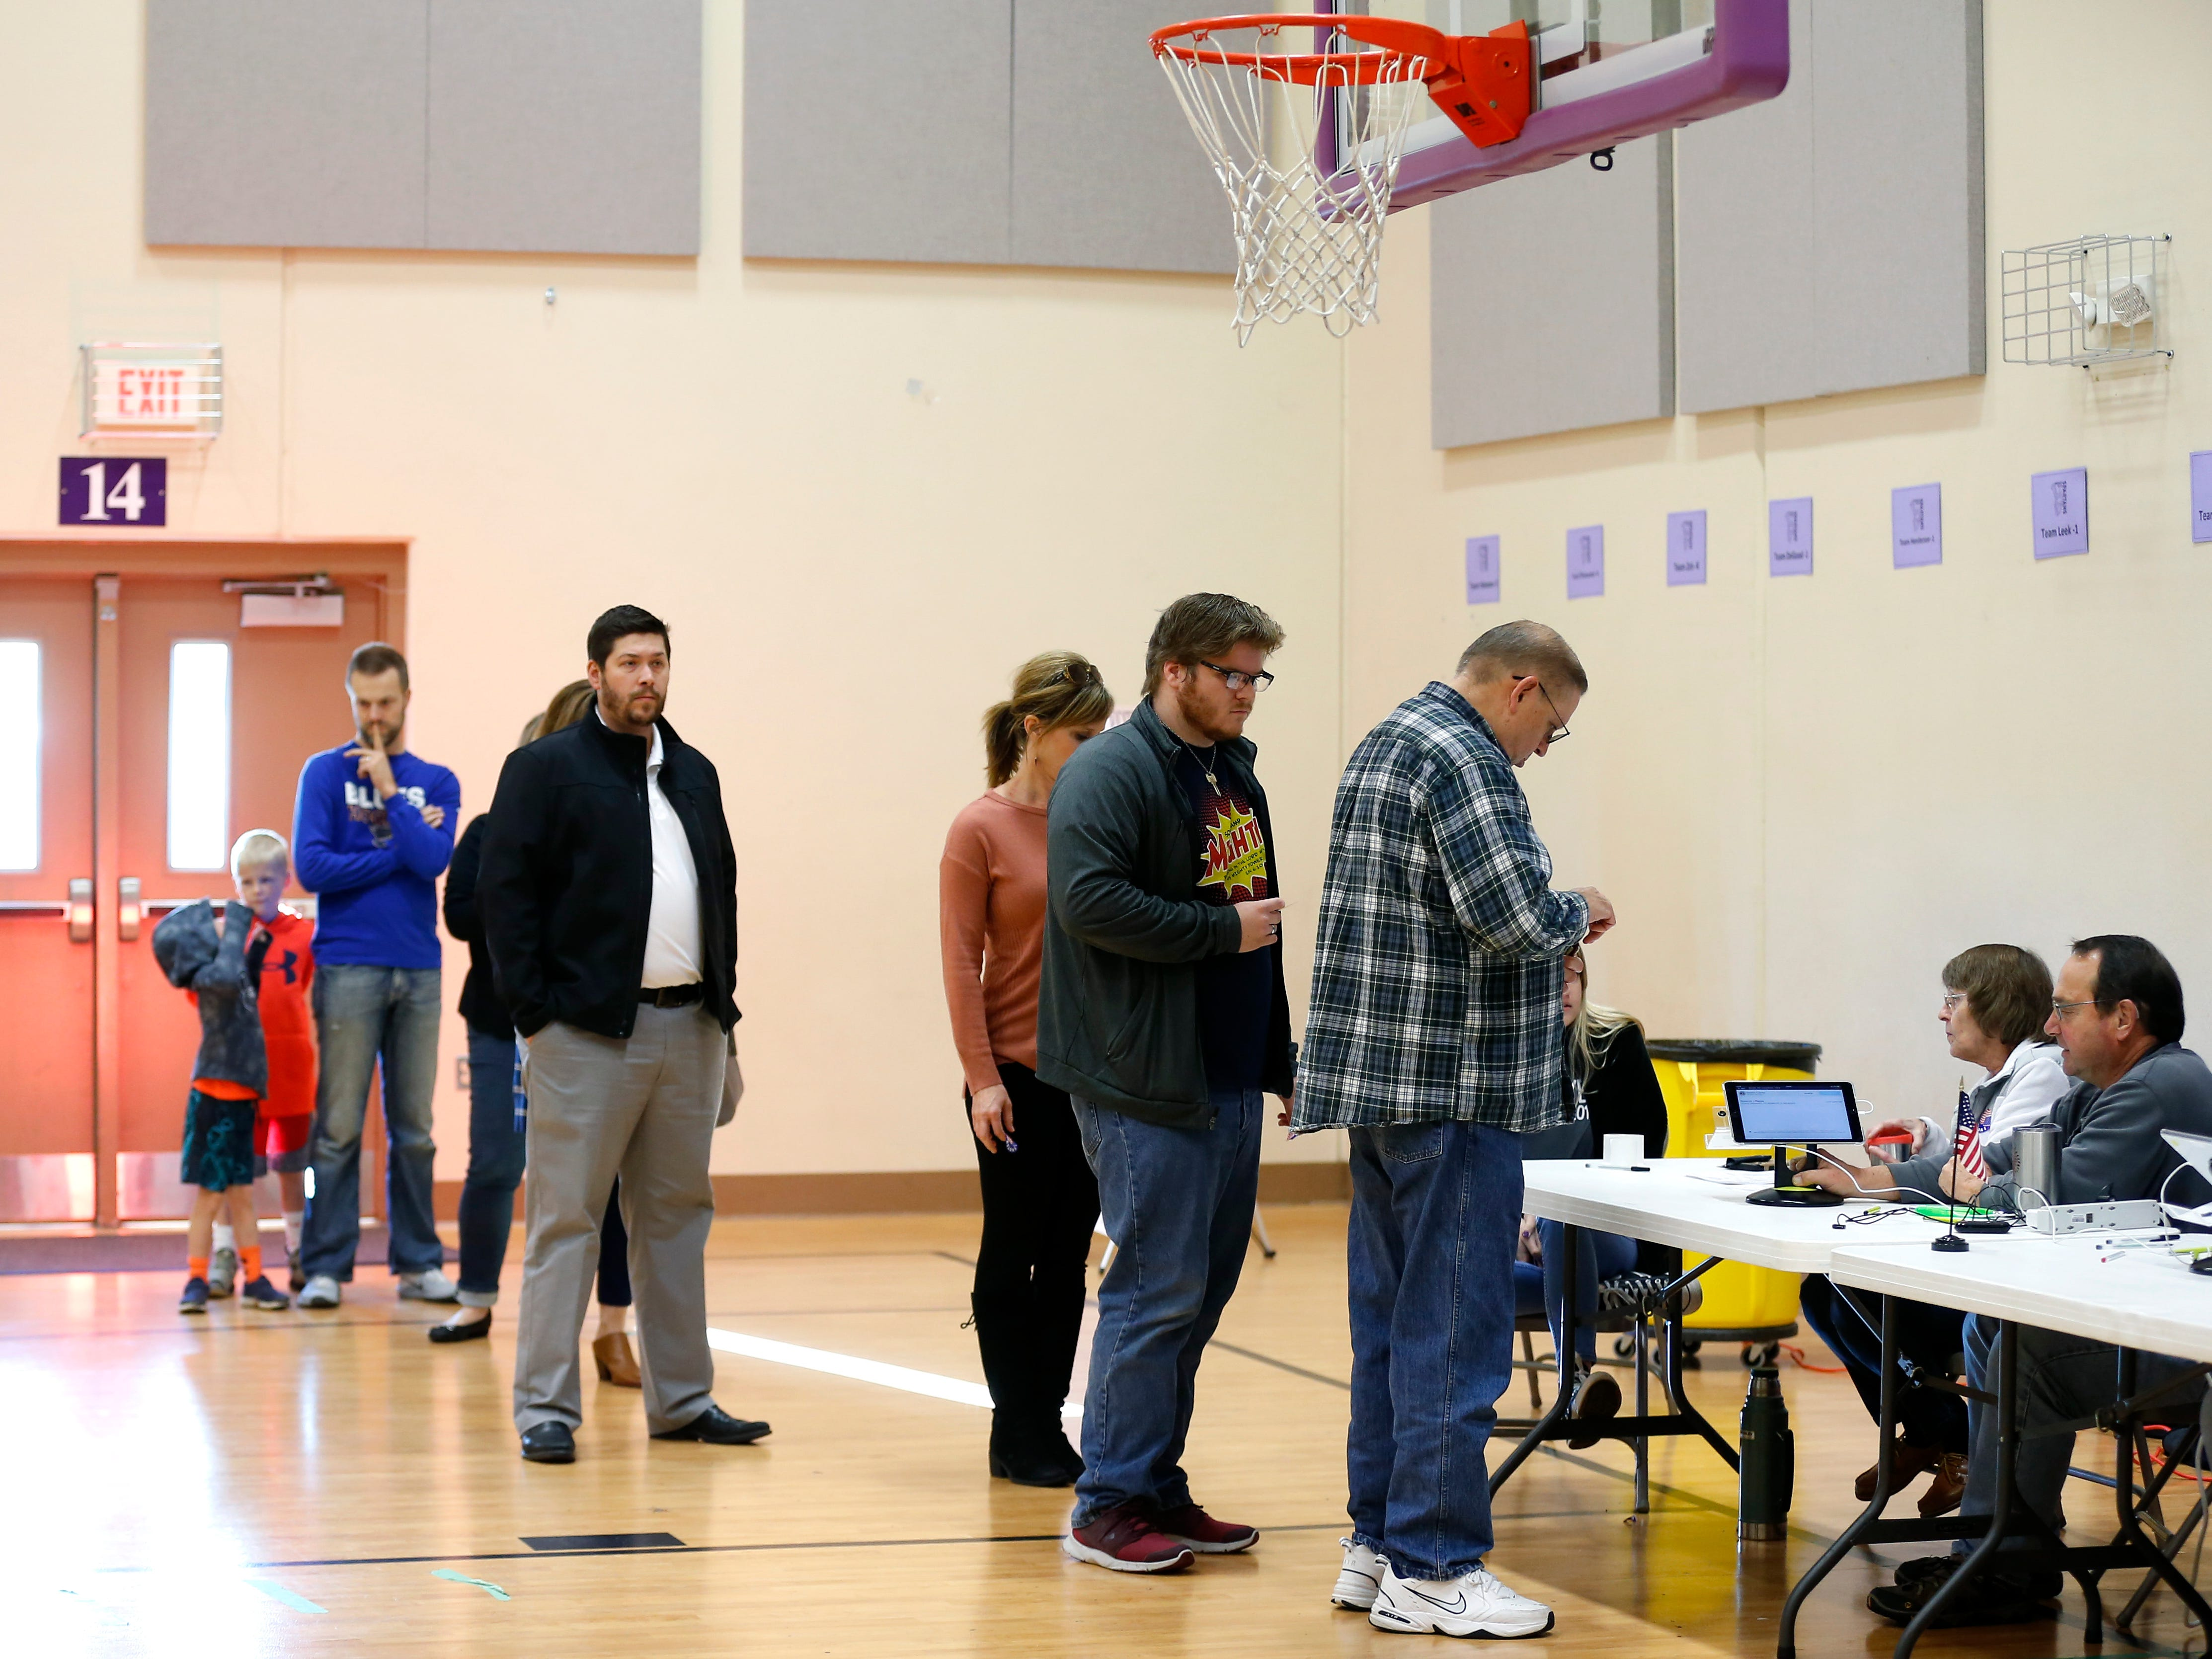 Voters line up to vote at the Hickory Hills School polling location on Tuesday, Nov. 6, 2018.